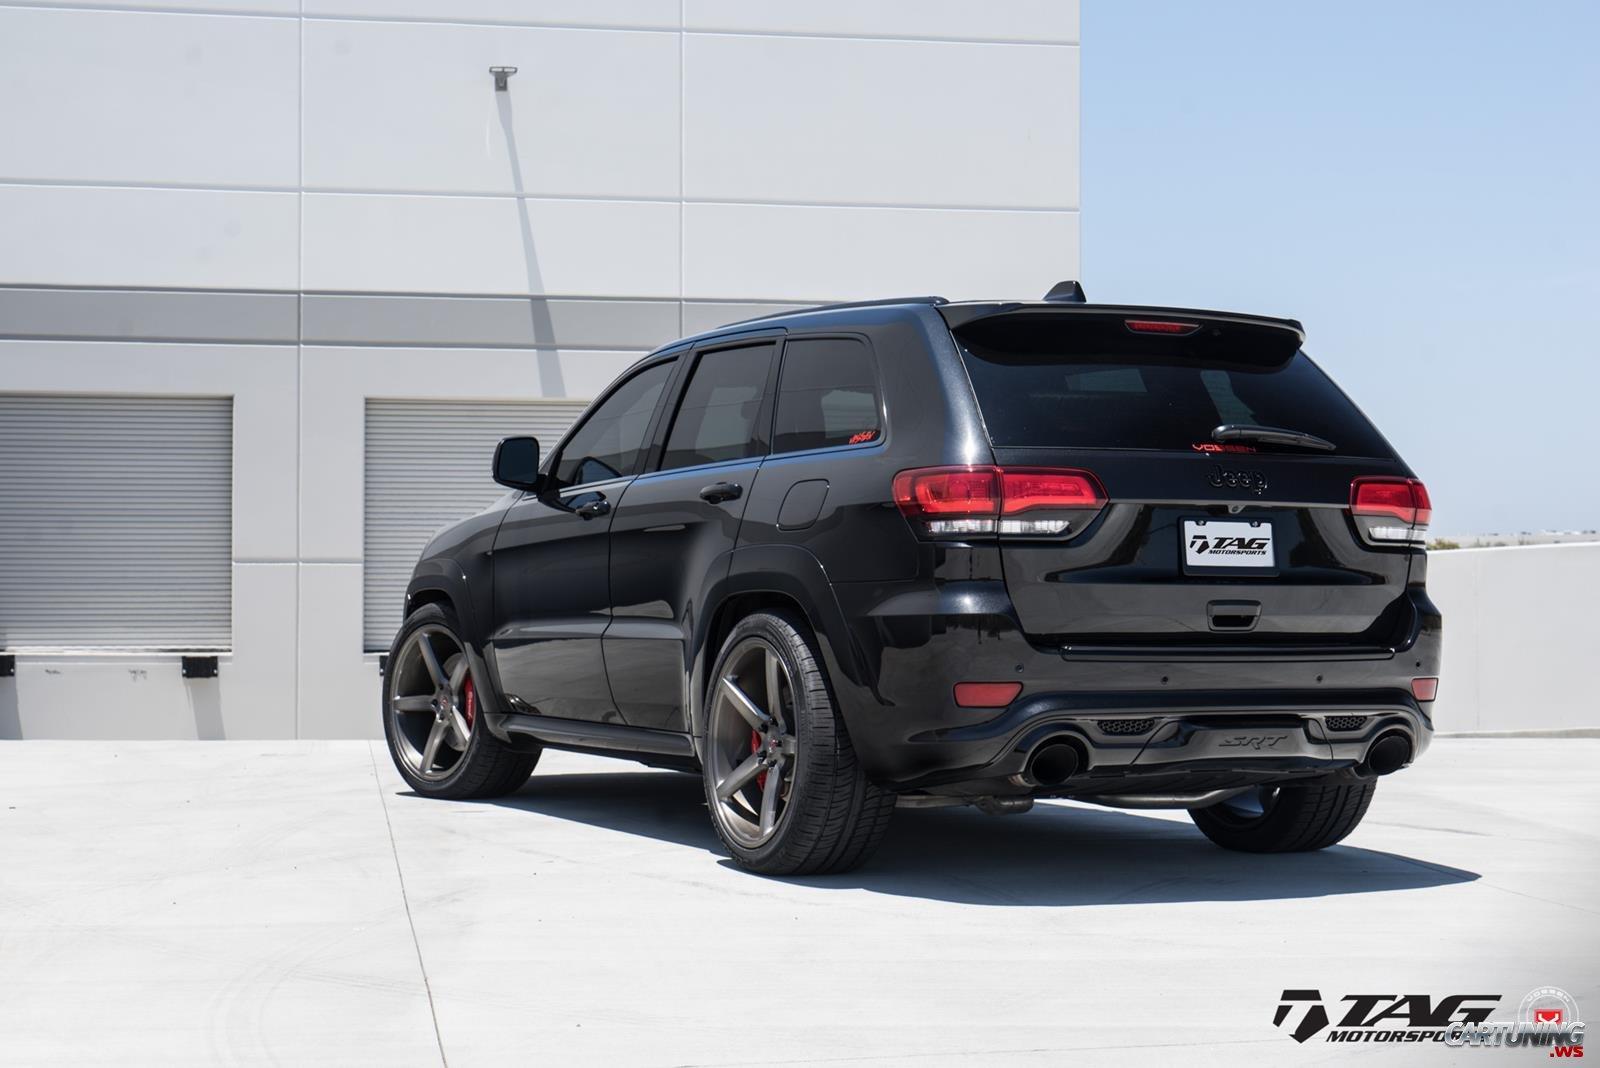 tuning jeep grand cherokee srt8 rear. Black Bedroom Furniture Sets. Home Design Ideas